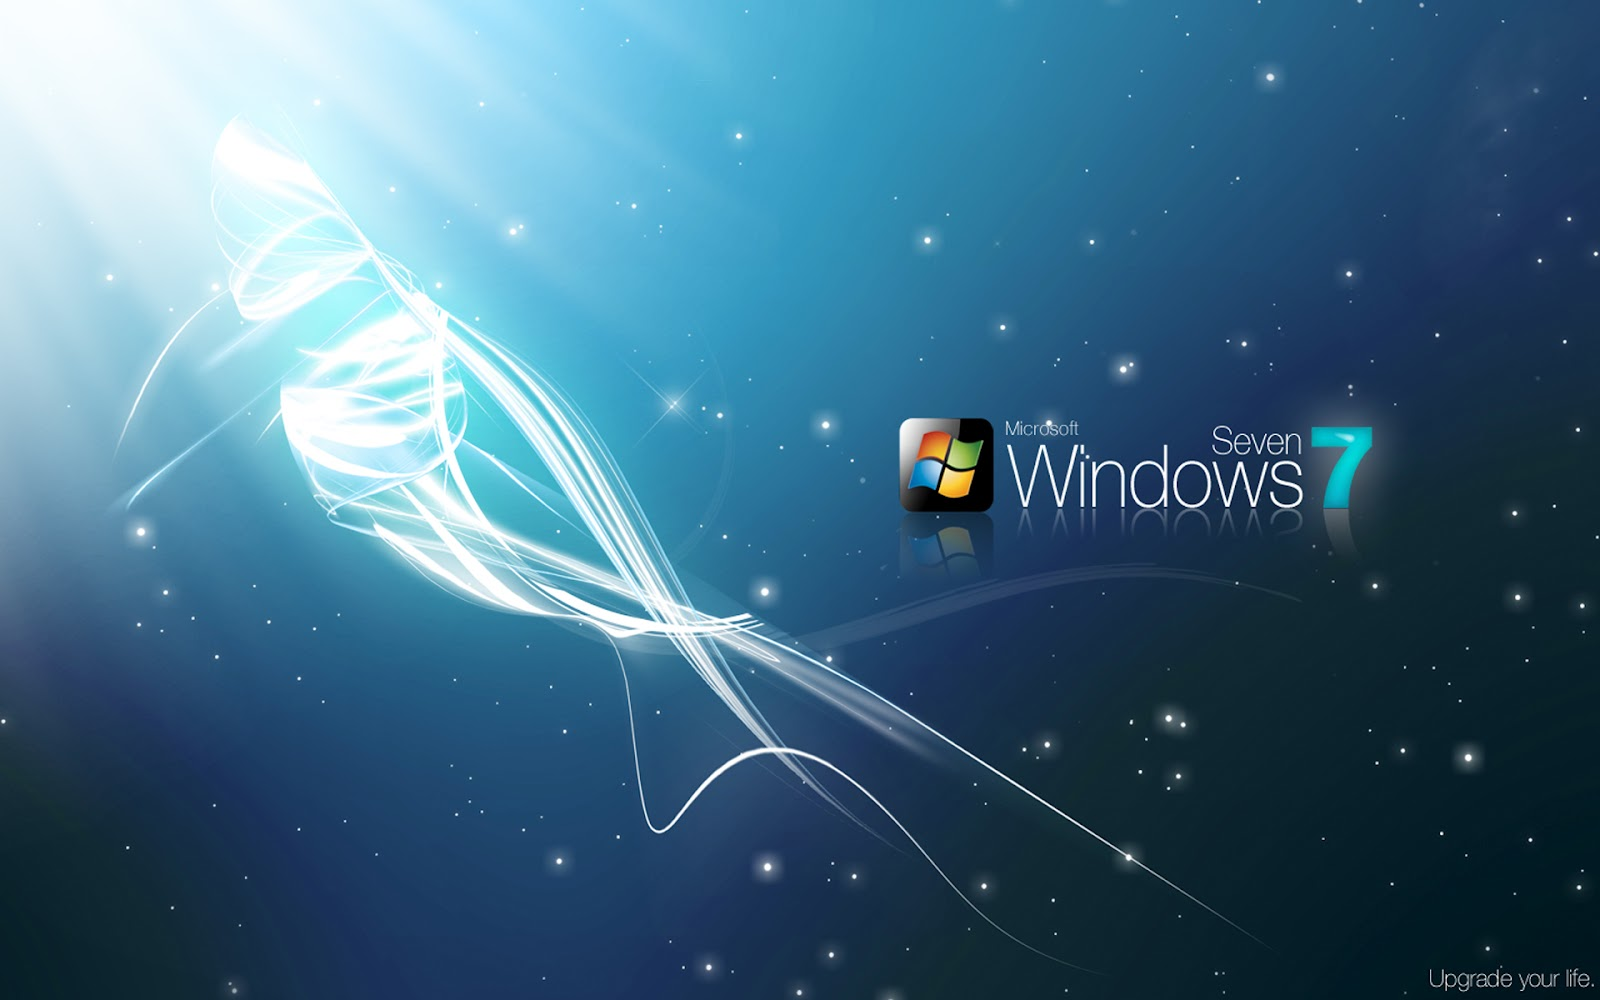 hd wallpapers of windows 7 ultimate Unique Things 1600x1000